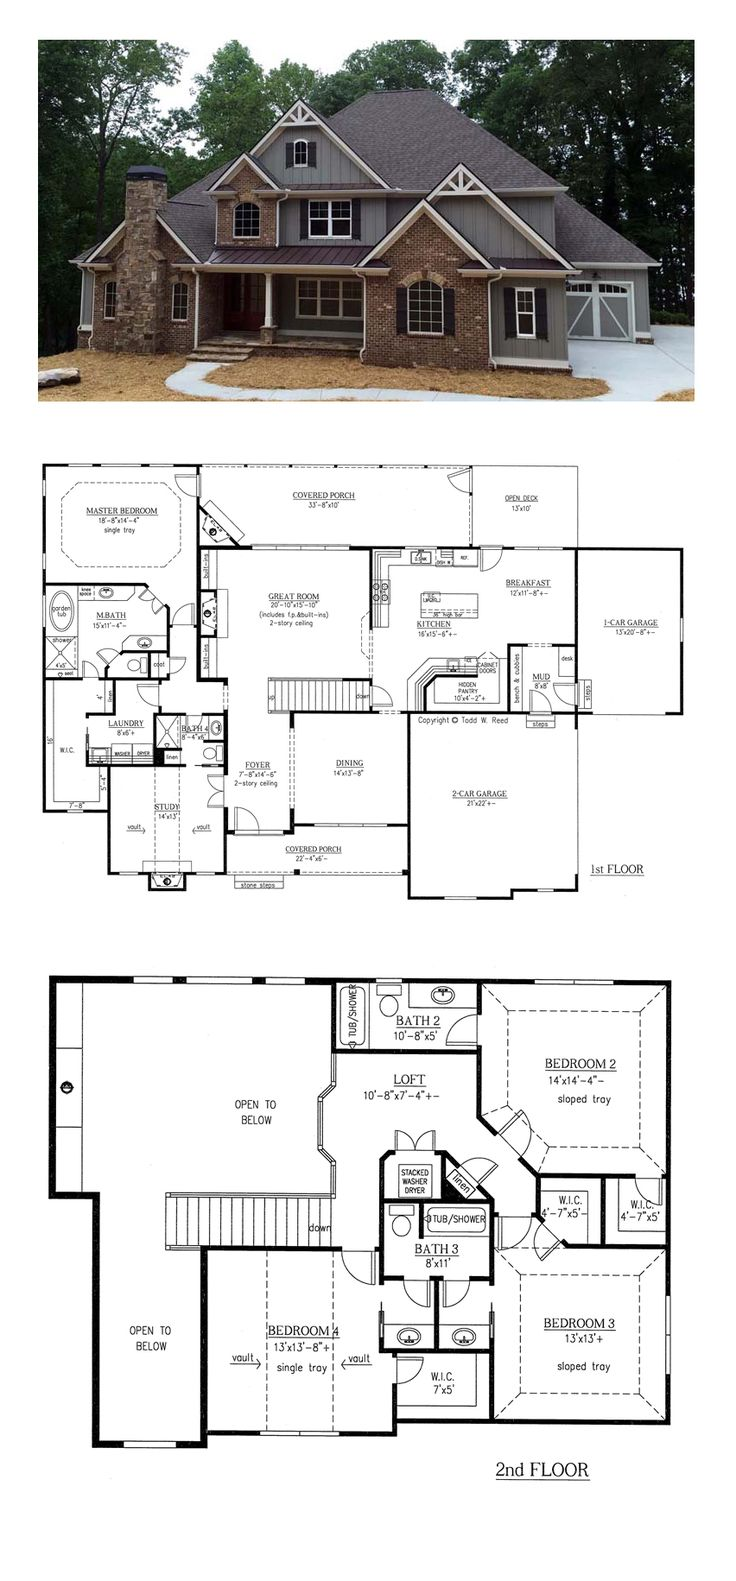 Best 20+ Floor plans ideas on Pinterest | House floor plans, House ...